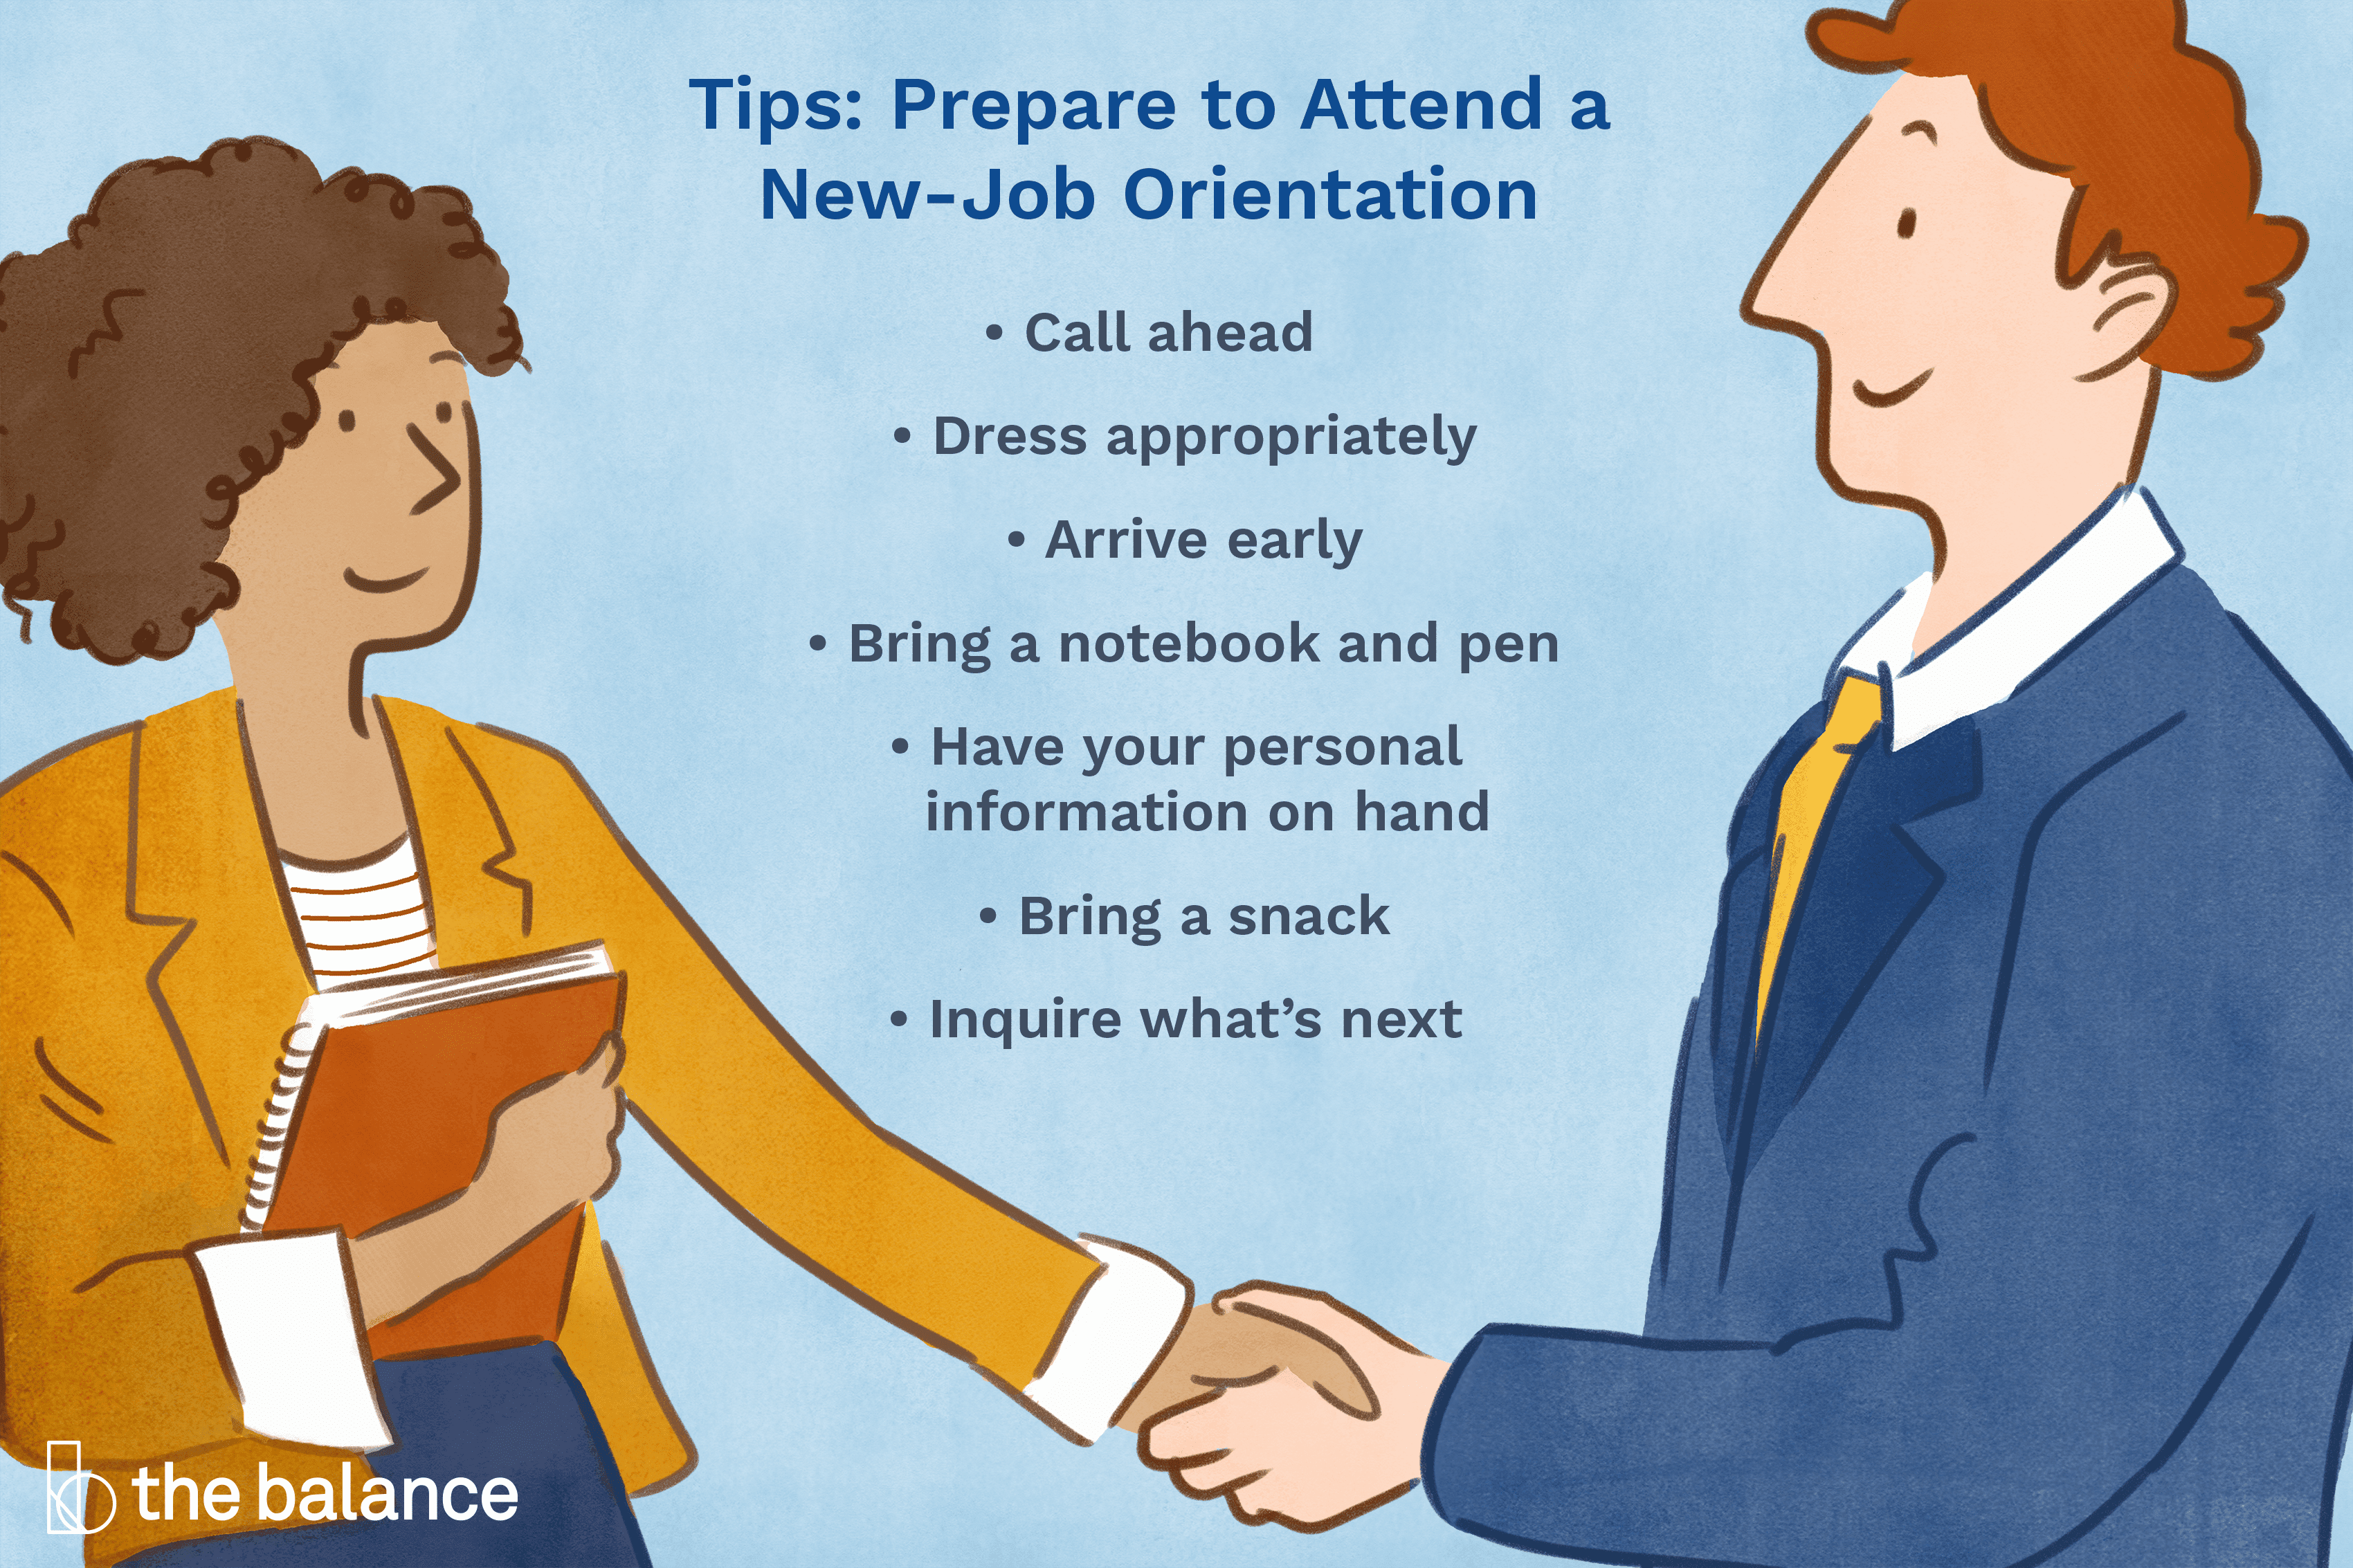 How to Prepare for New Job Orientation